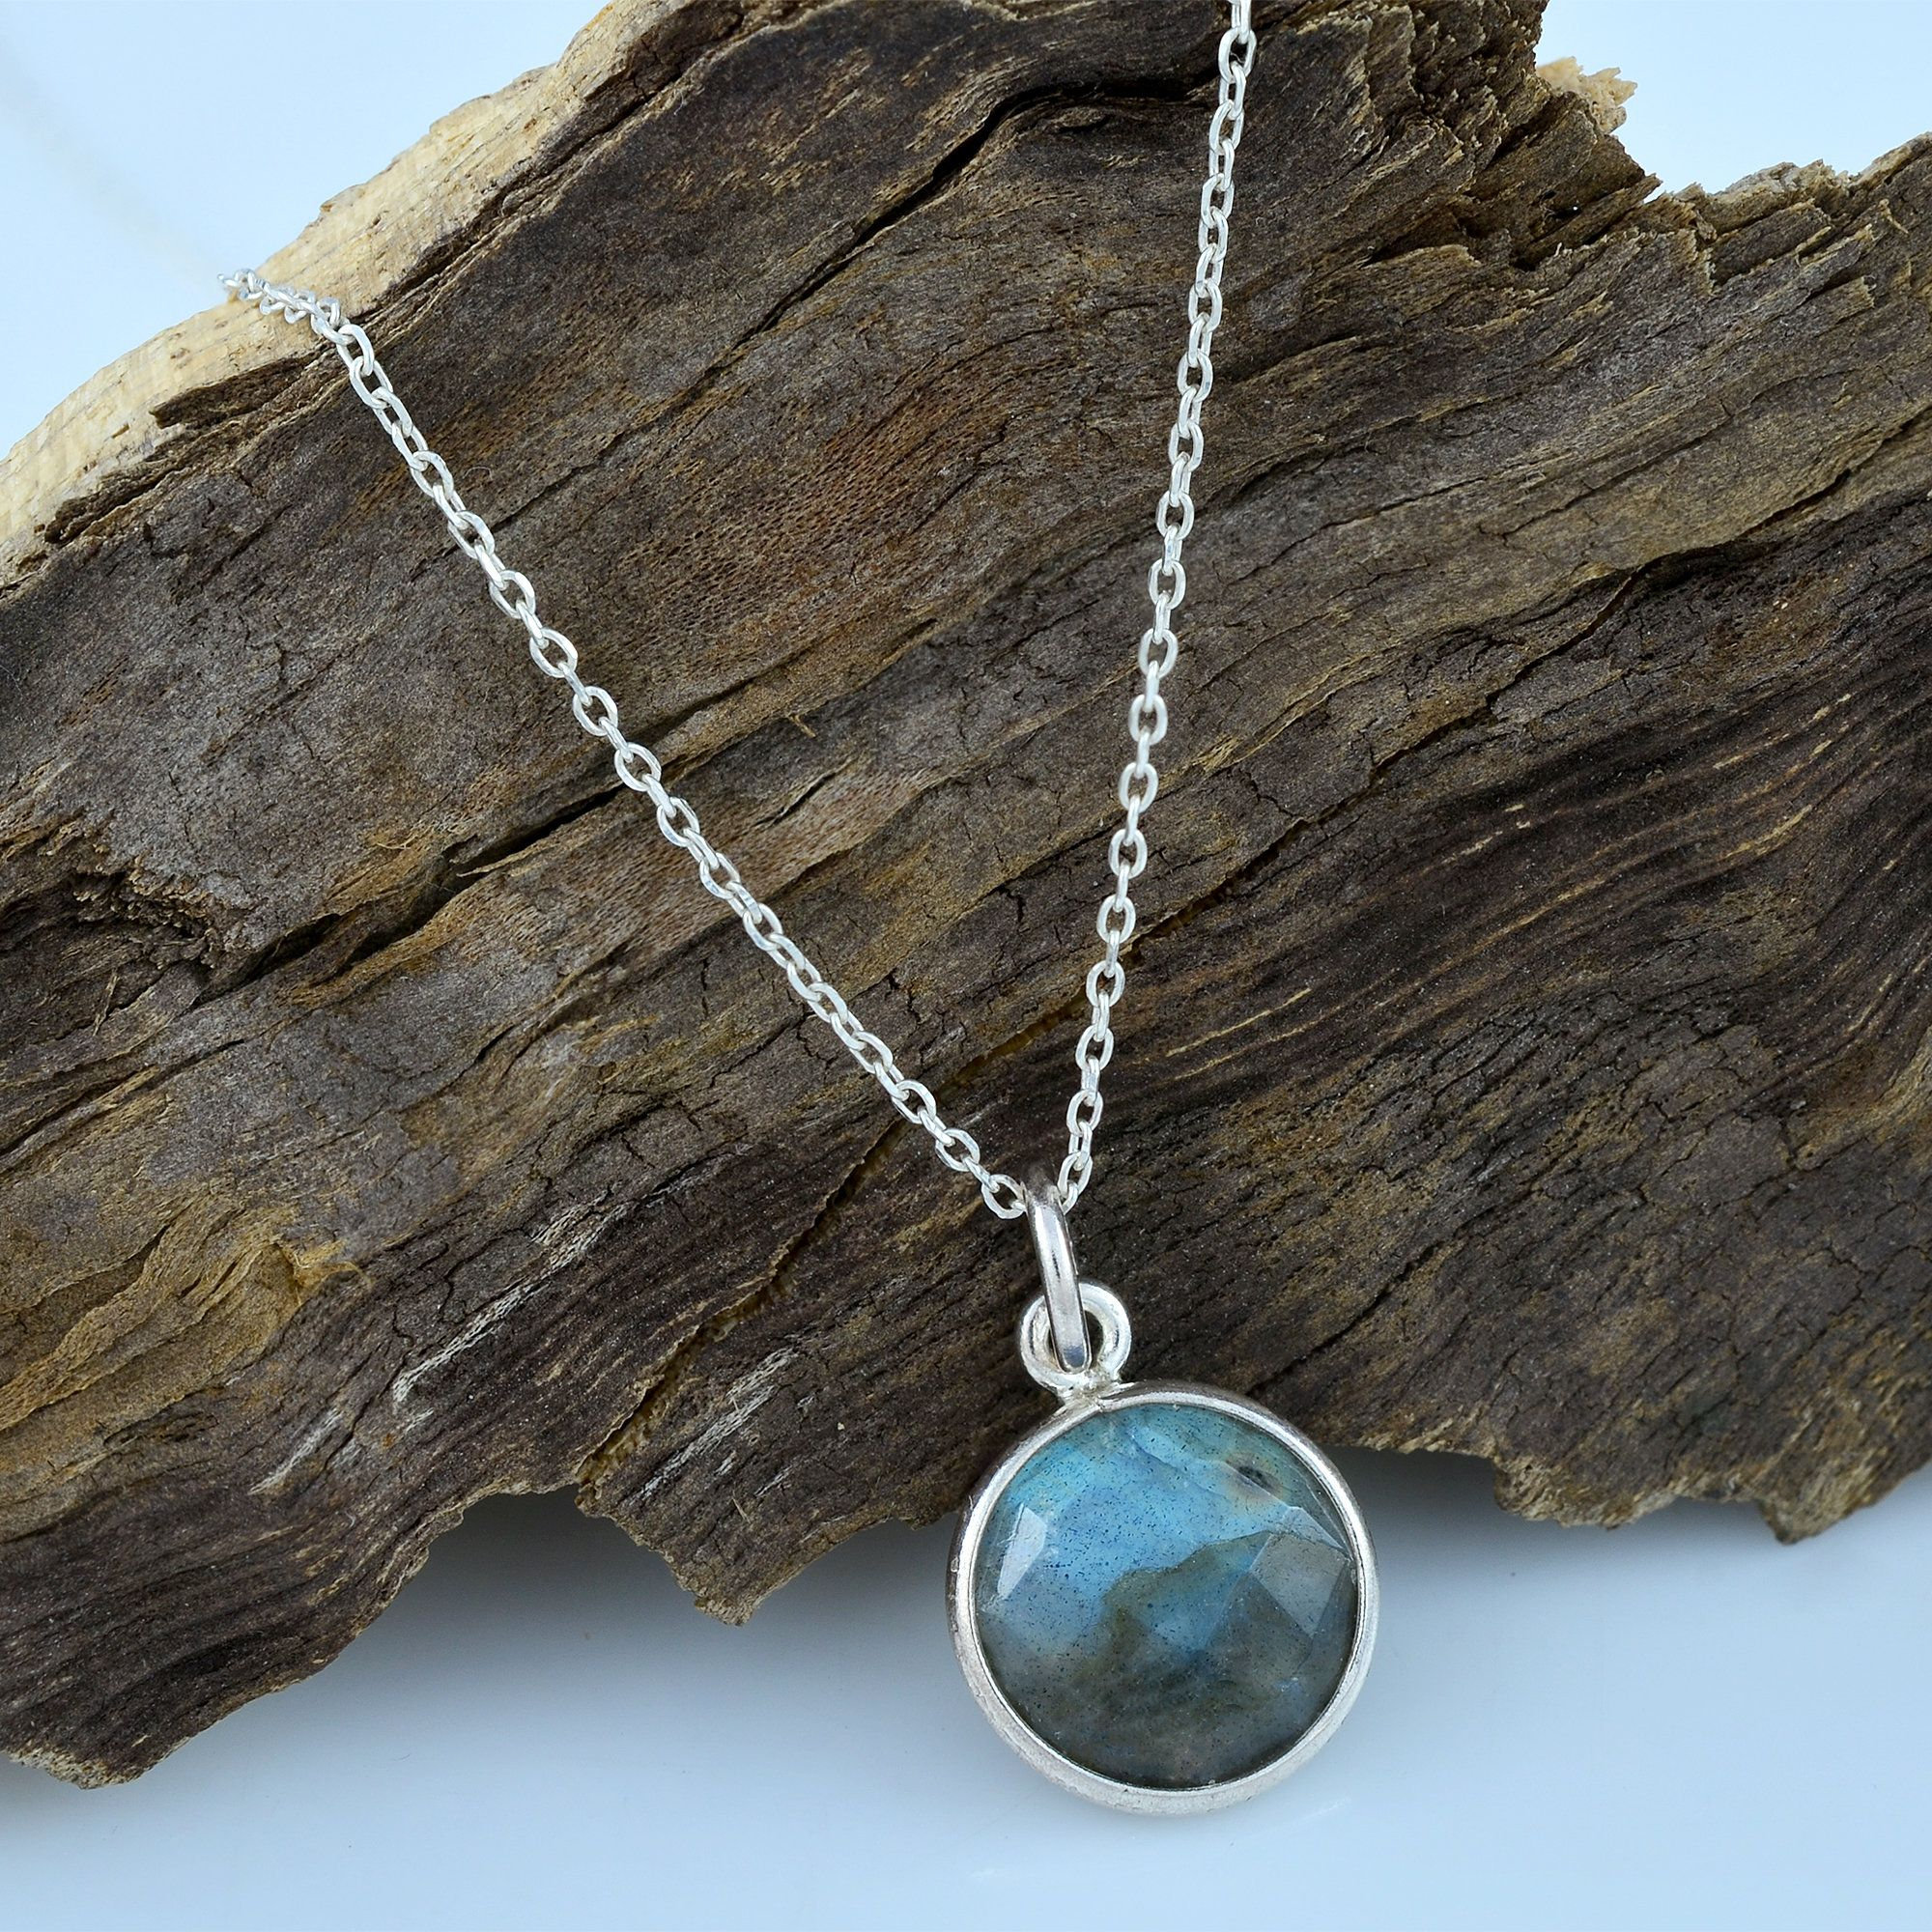 For Mother/'s Day Gift,Natural Labradorite Necklace,,Labradorite handmade Necklace,Faceted Labradorite necklace,Blue Labradorite Necklace